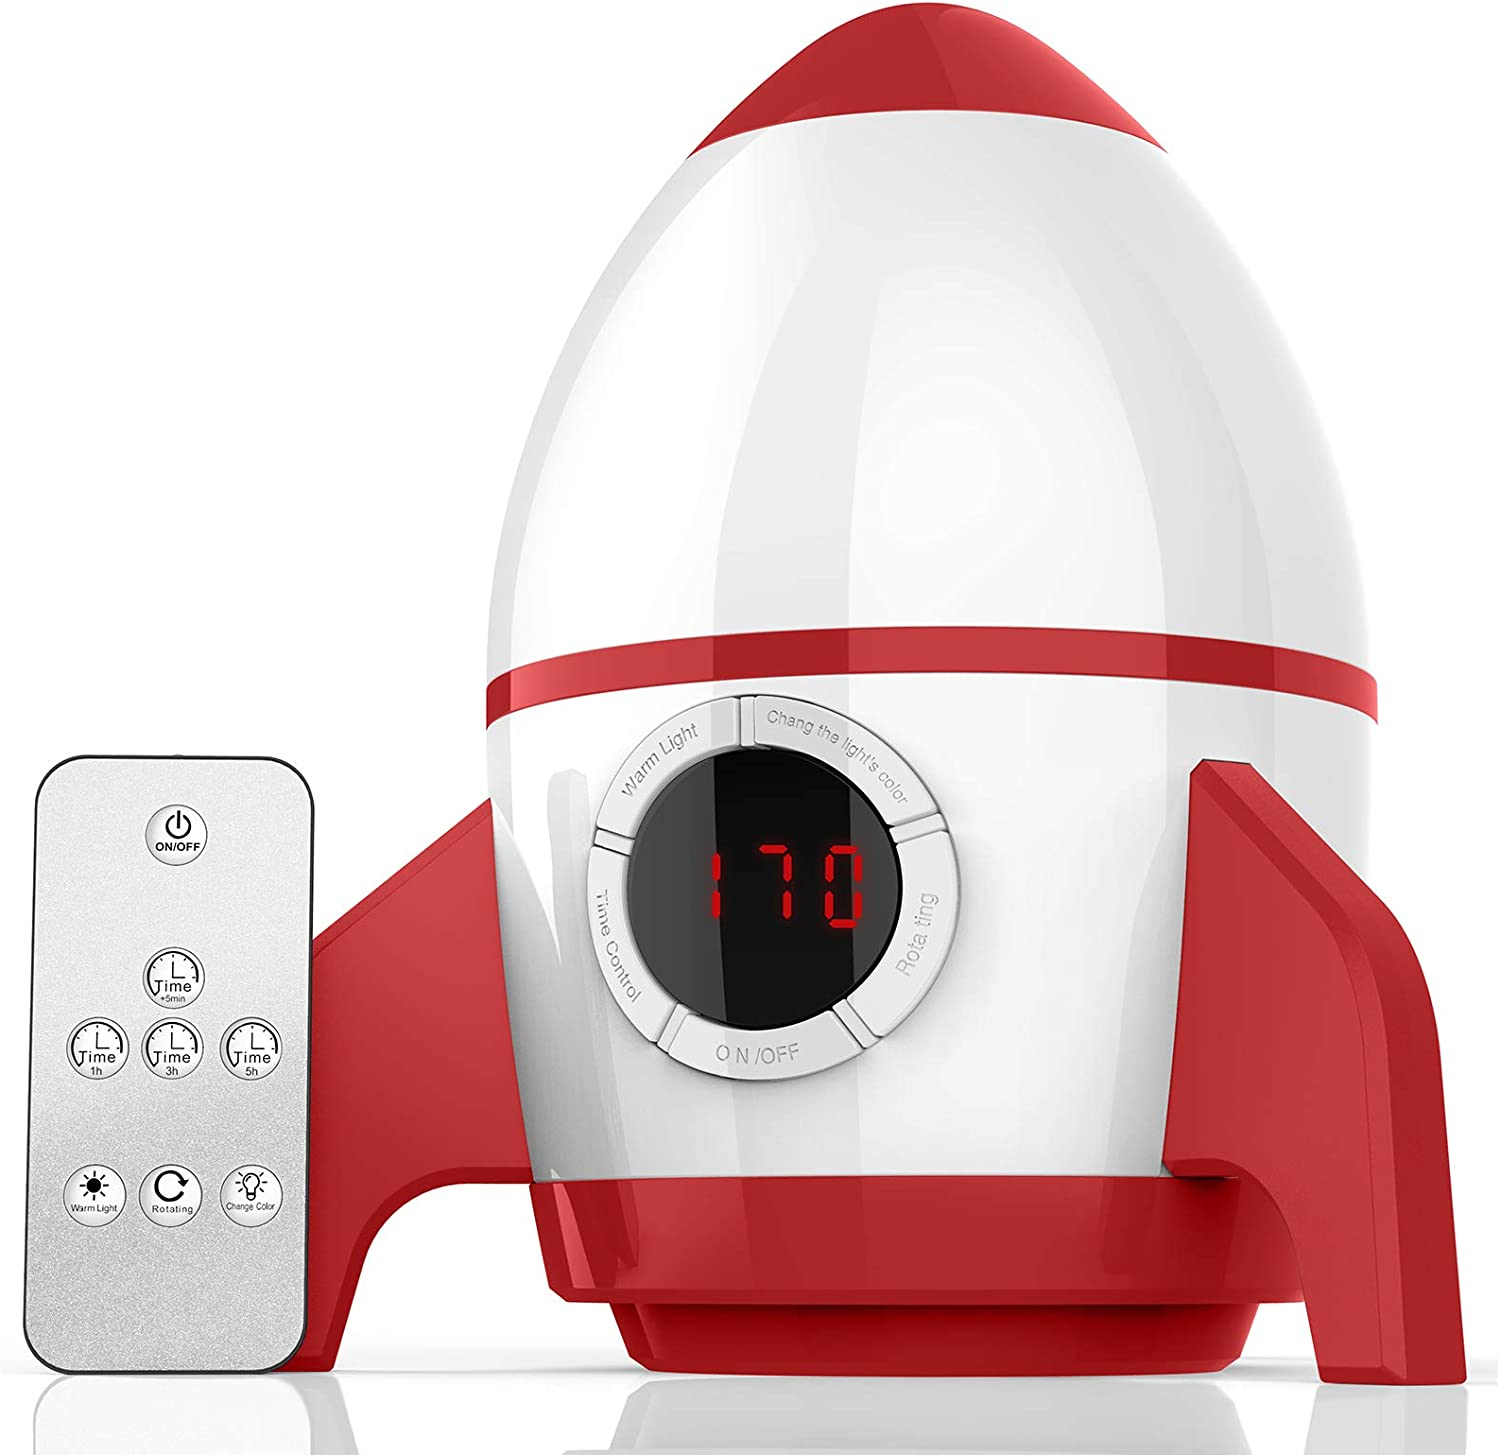 Aisuo Star Night Light for Kids, Rechargeable Lighting Lamp with Timer, Remote Control & Rotating £9.99 @ Amazon